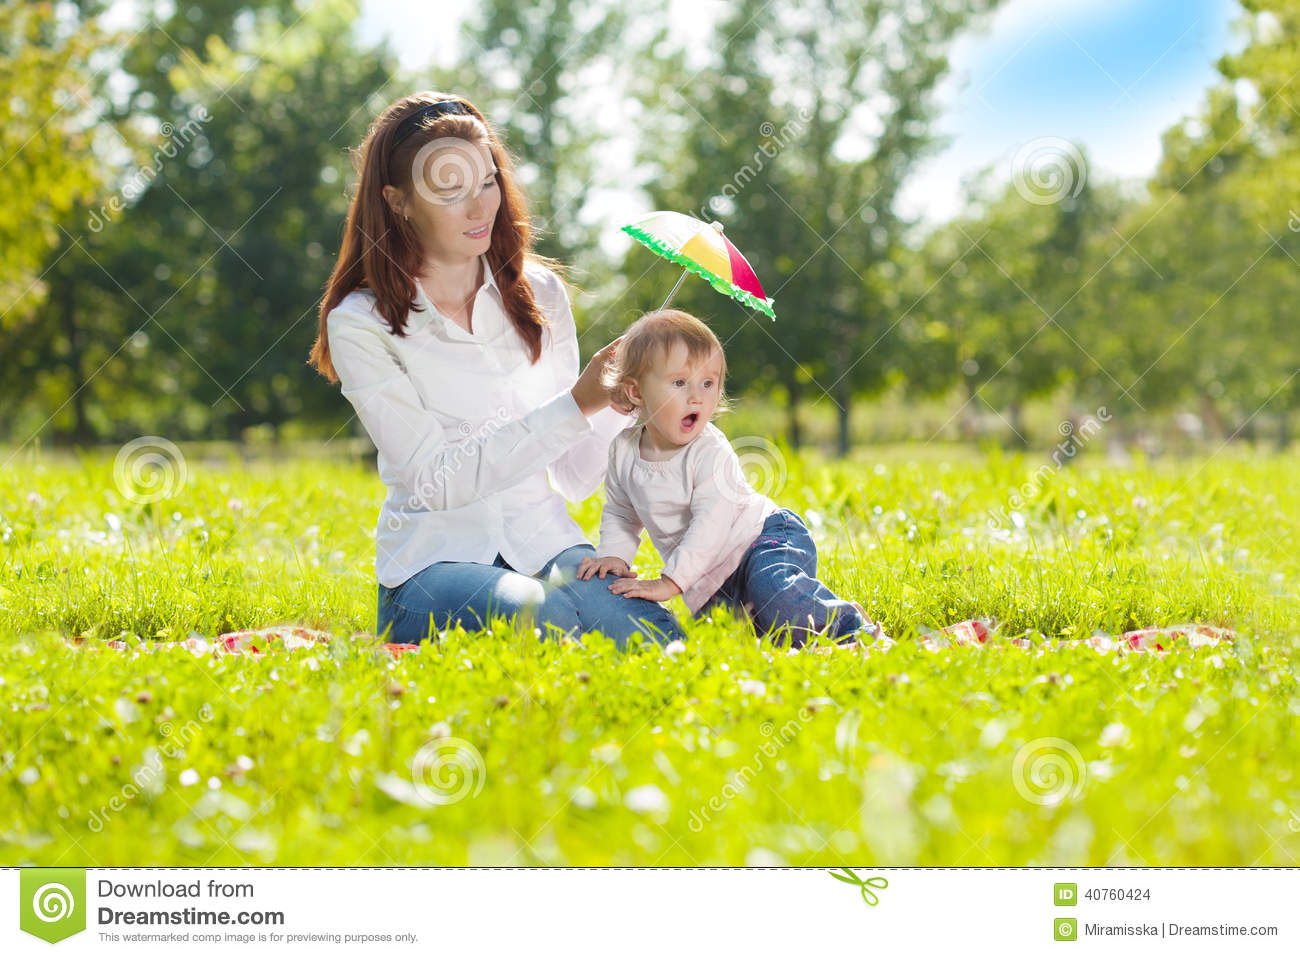 Beautiful mom and baby outdoors happy family playing in nature mom and baby mother and child